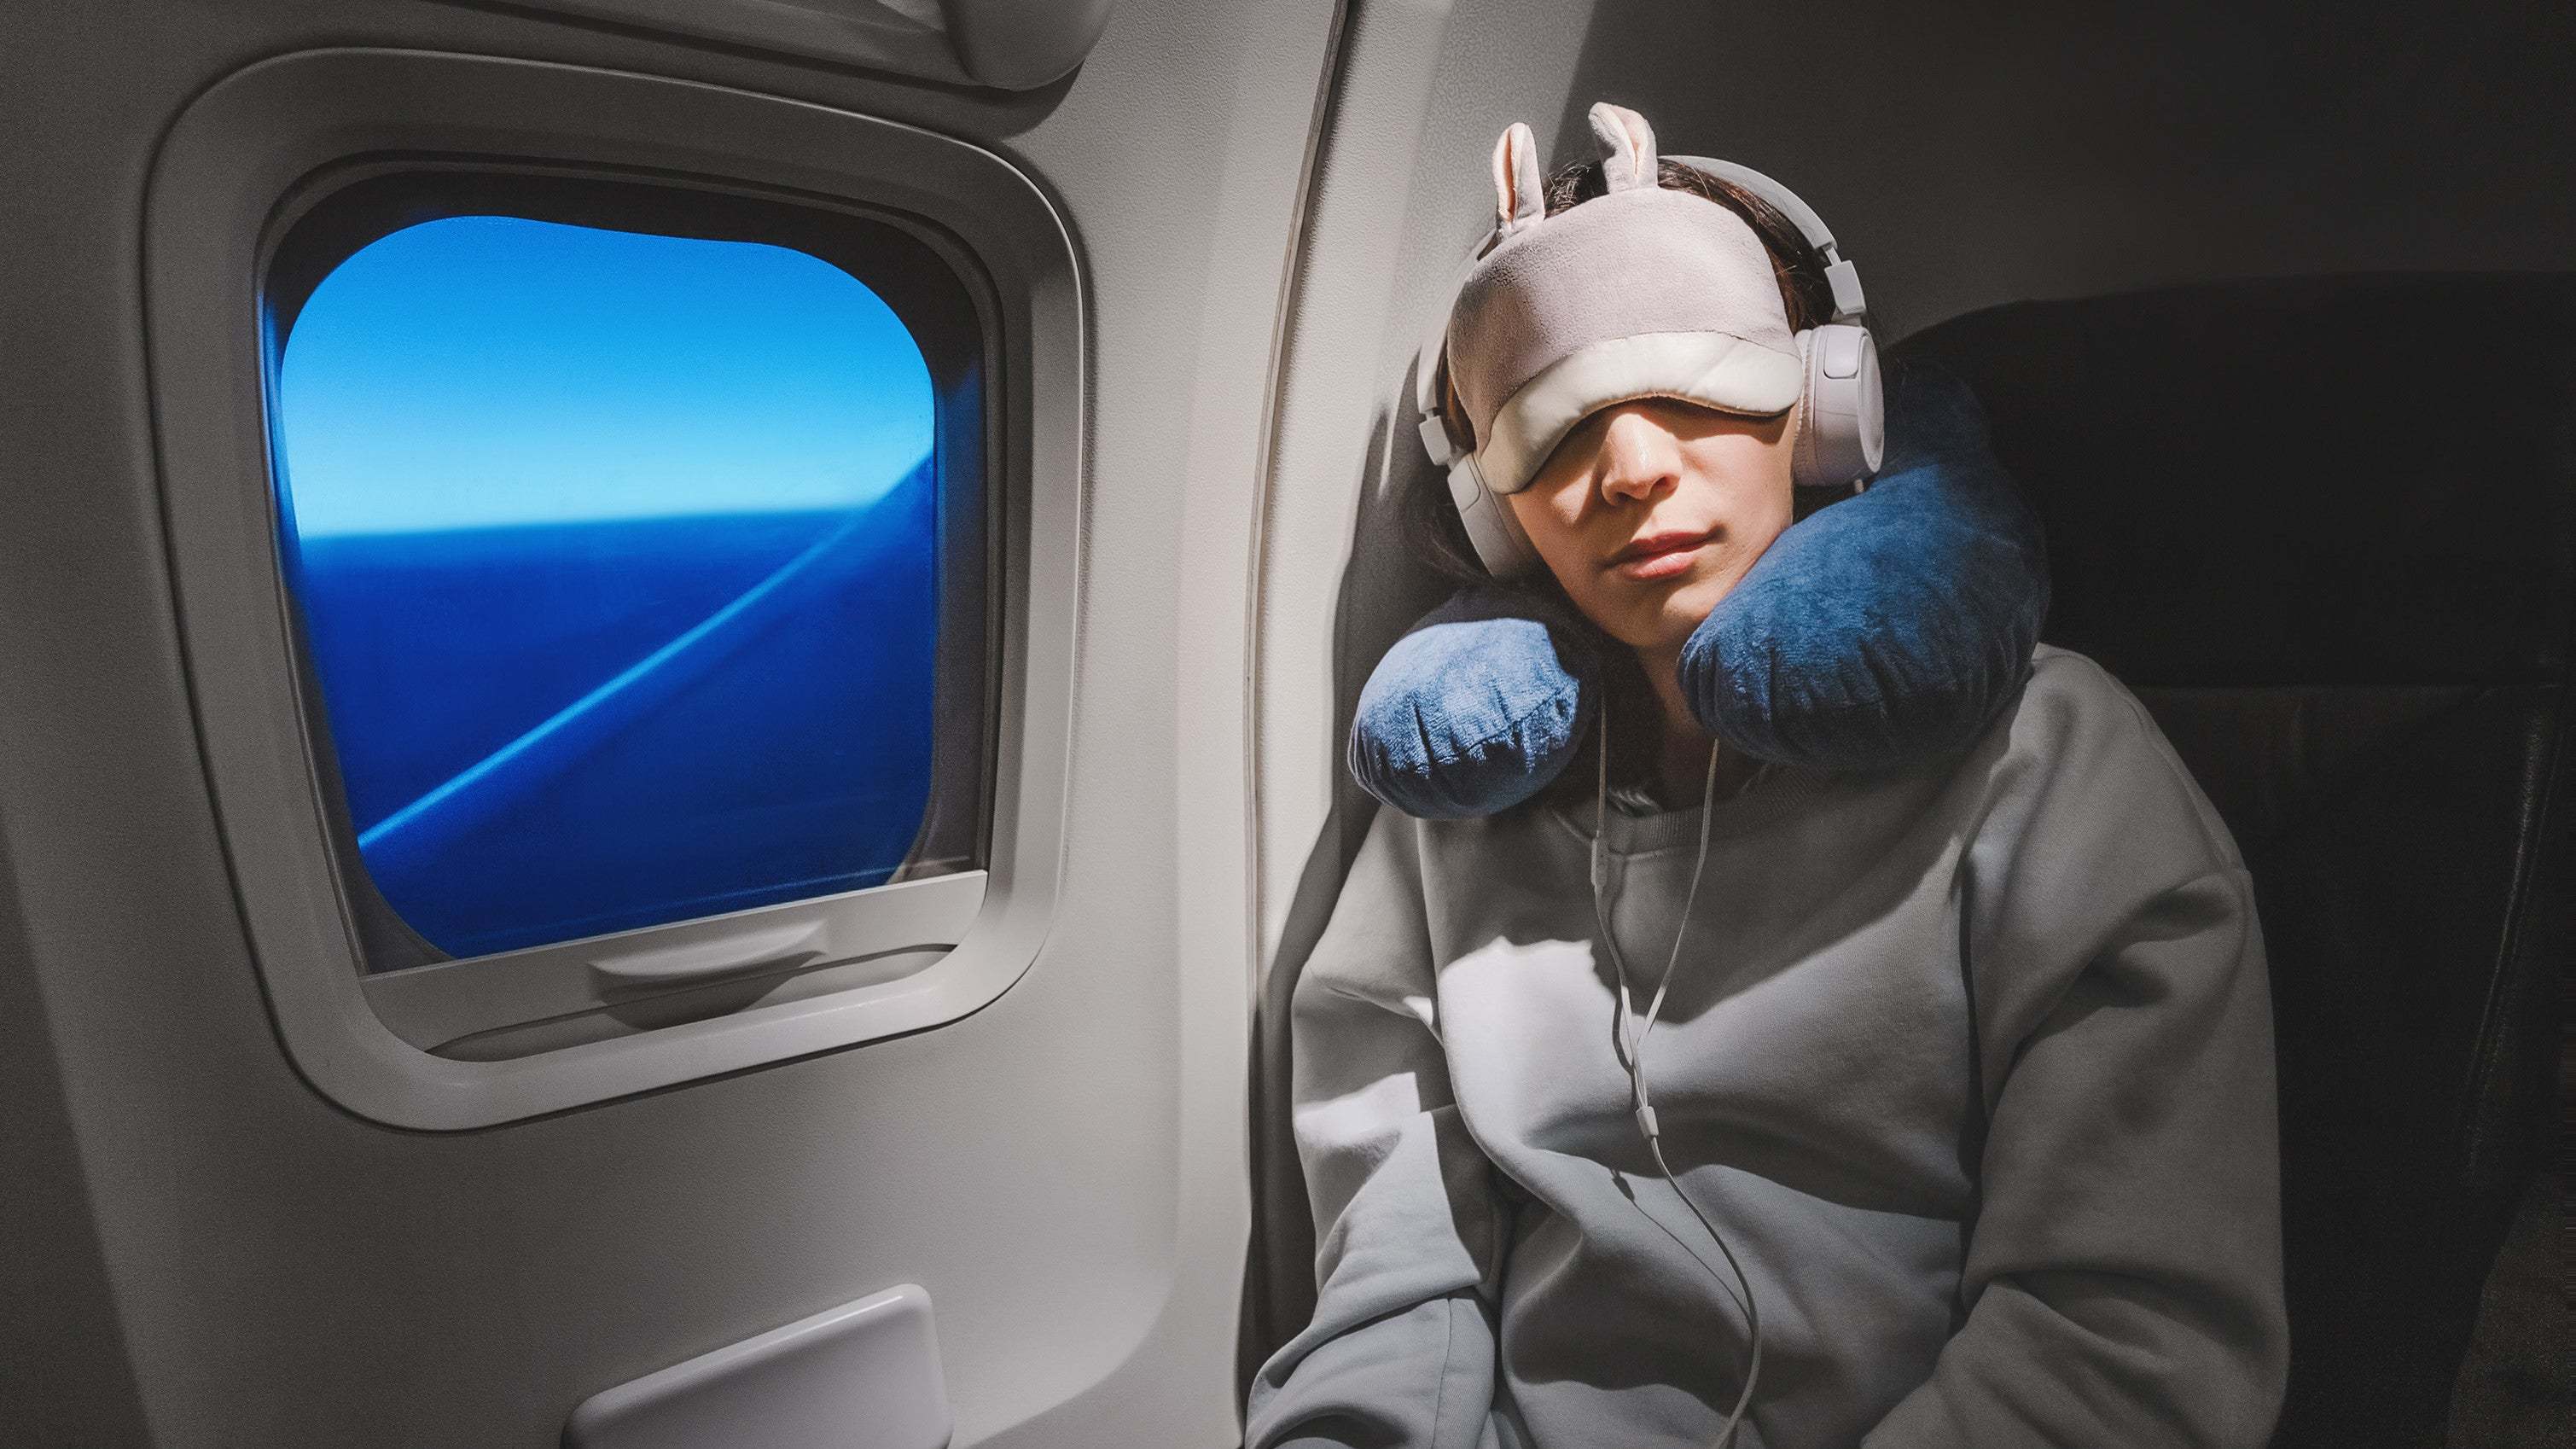 How To Avoid Sitting Next To A Crying Baby On A Flight